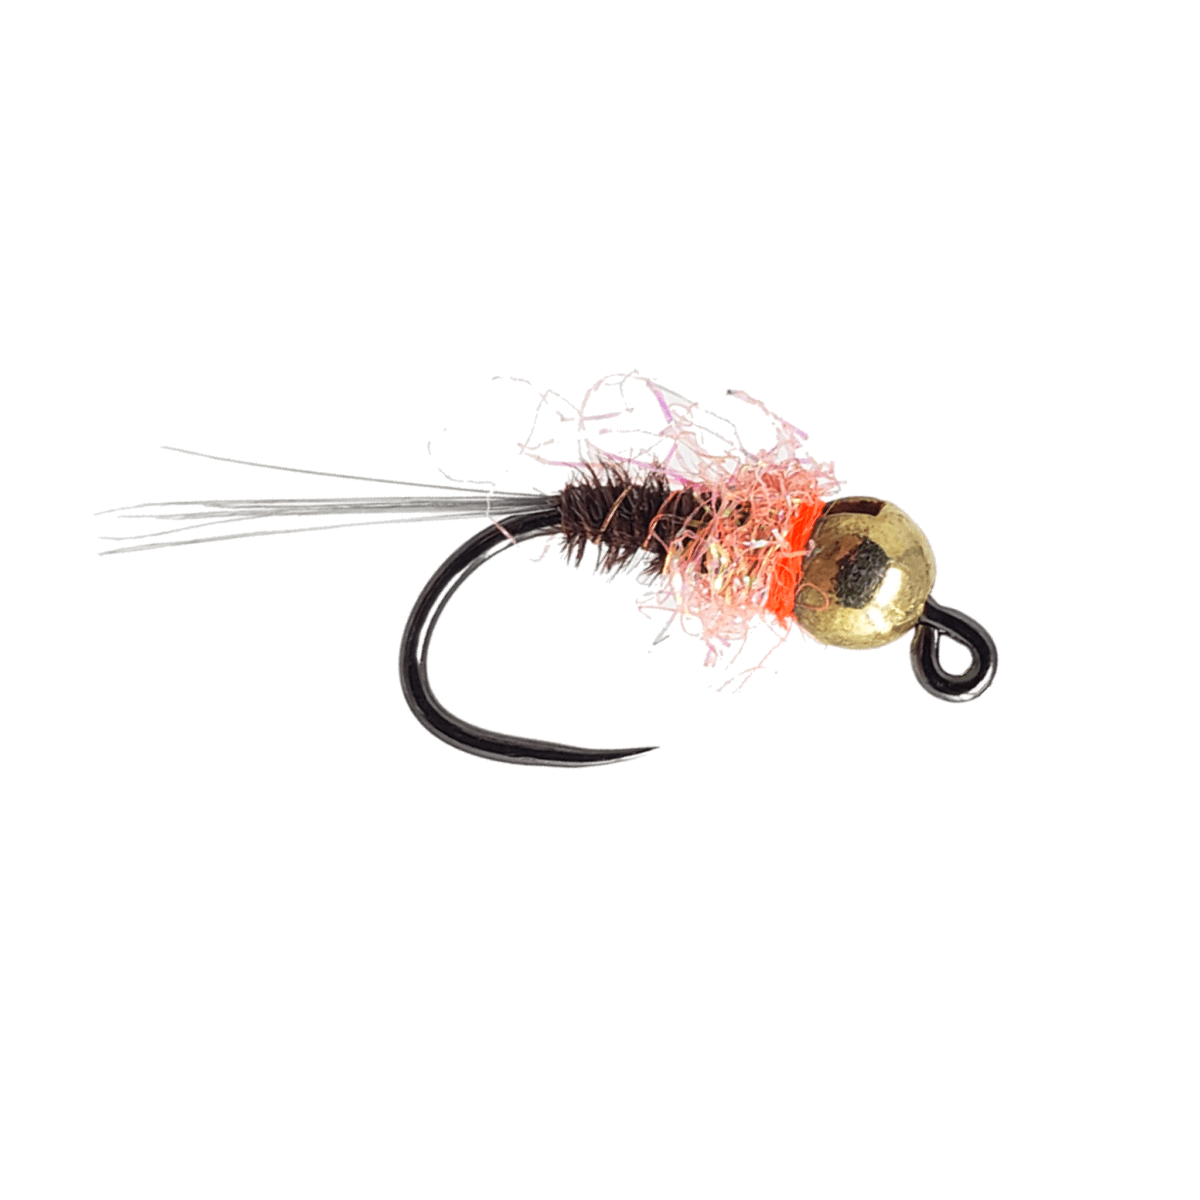 UV Orange 6 Fly Fishing Flies with Tungsten Bead Sz.16 Frenchie Jig Nymph